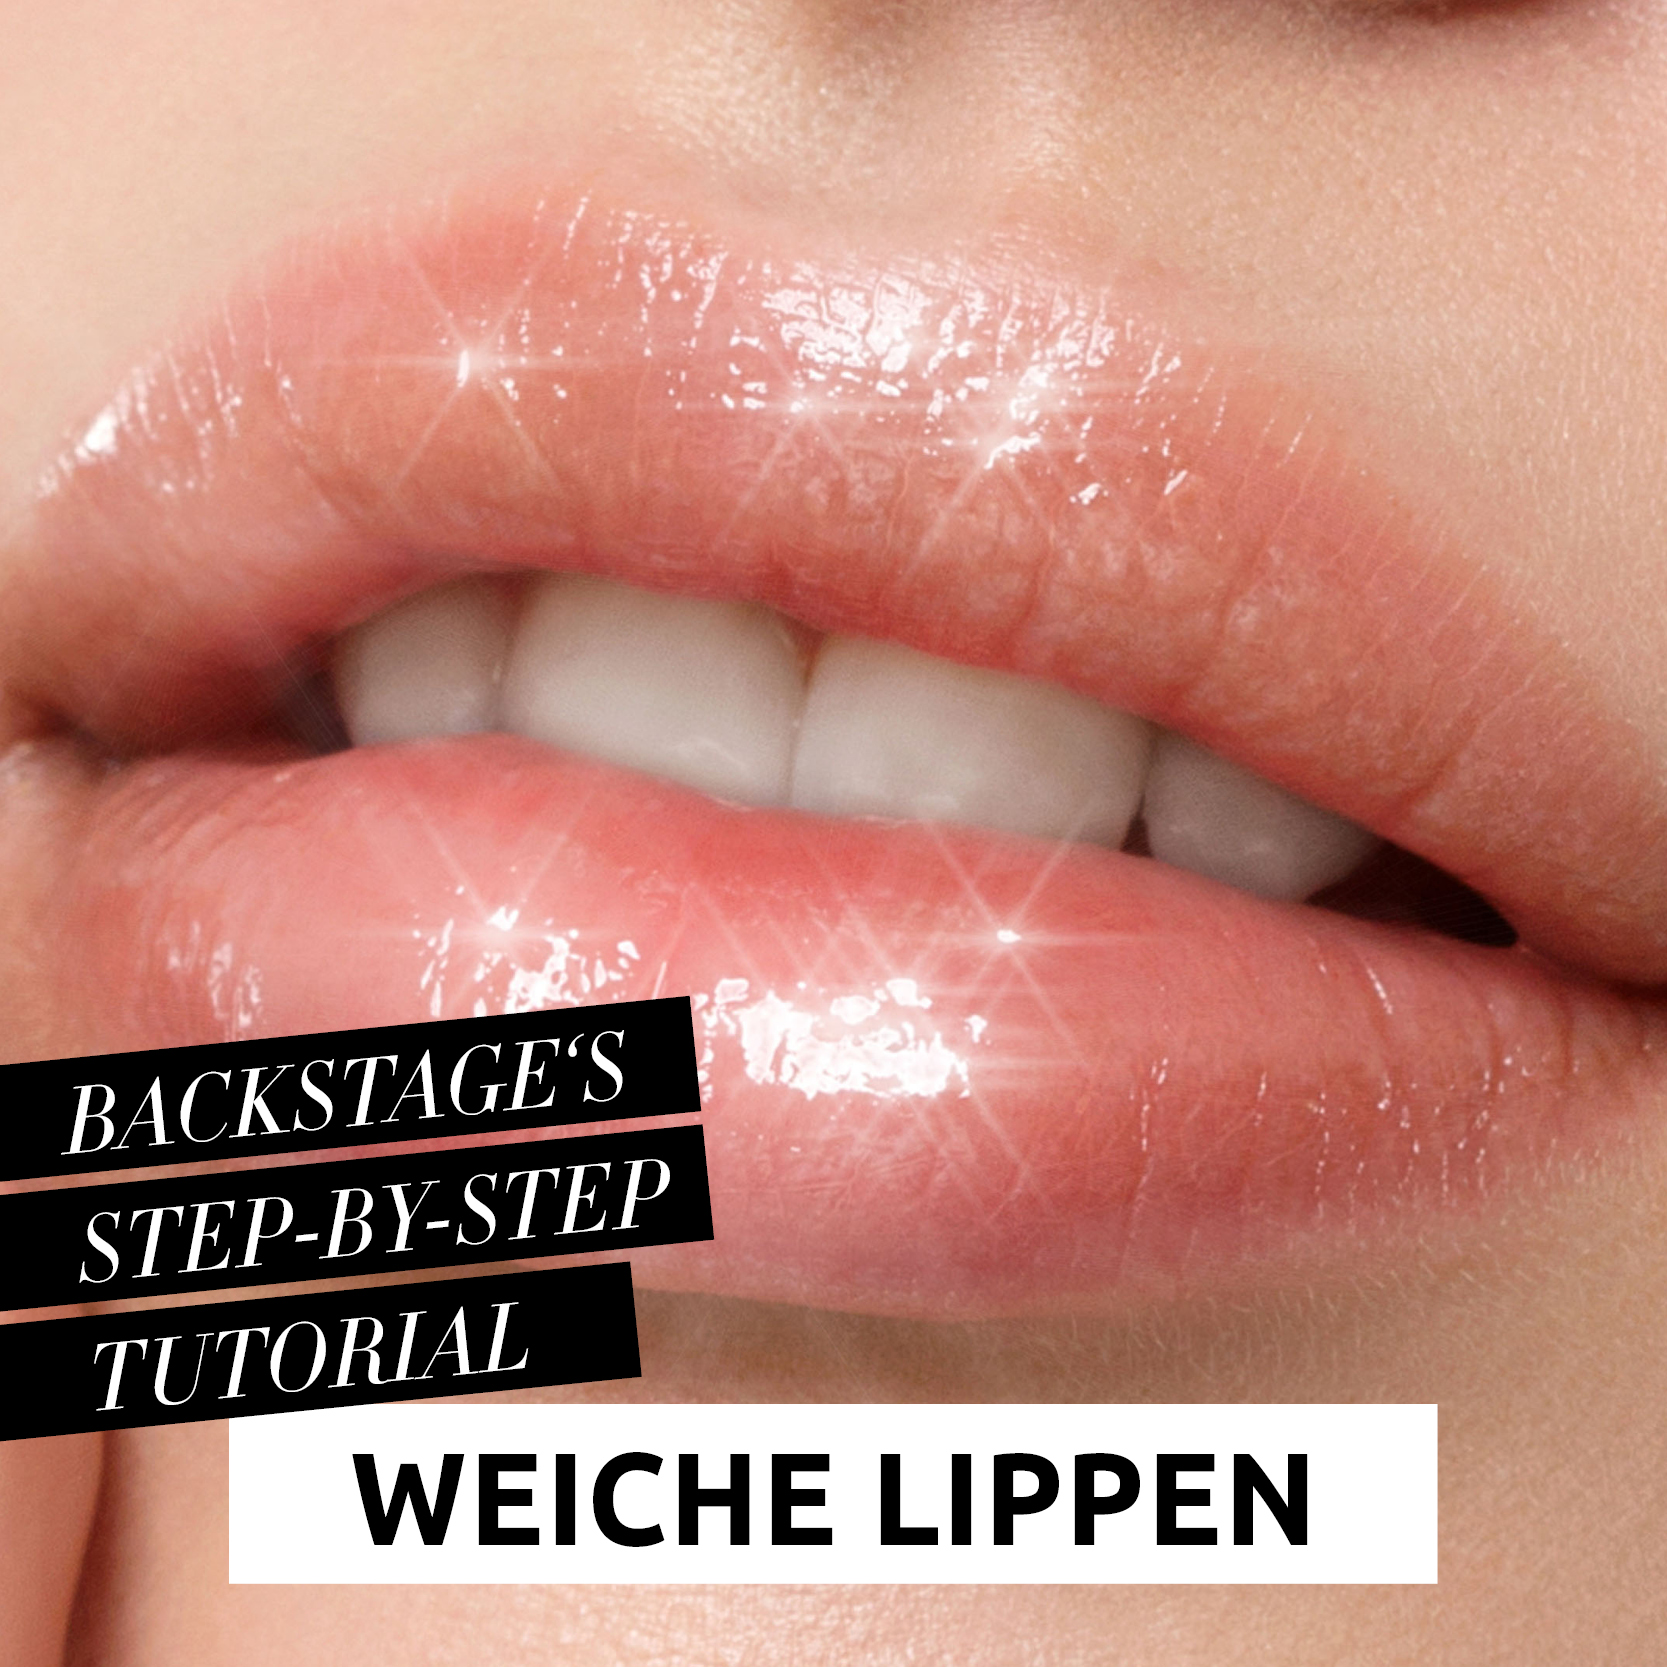 Peel your lips! Here's why: